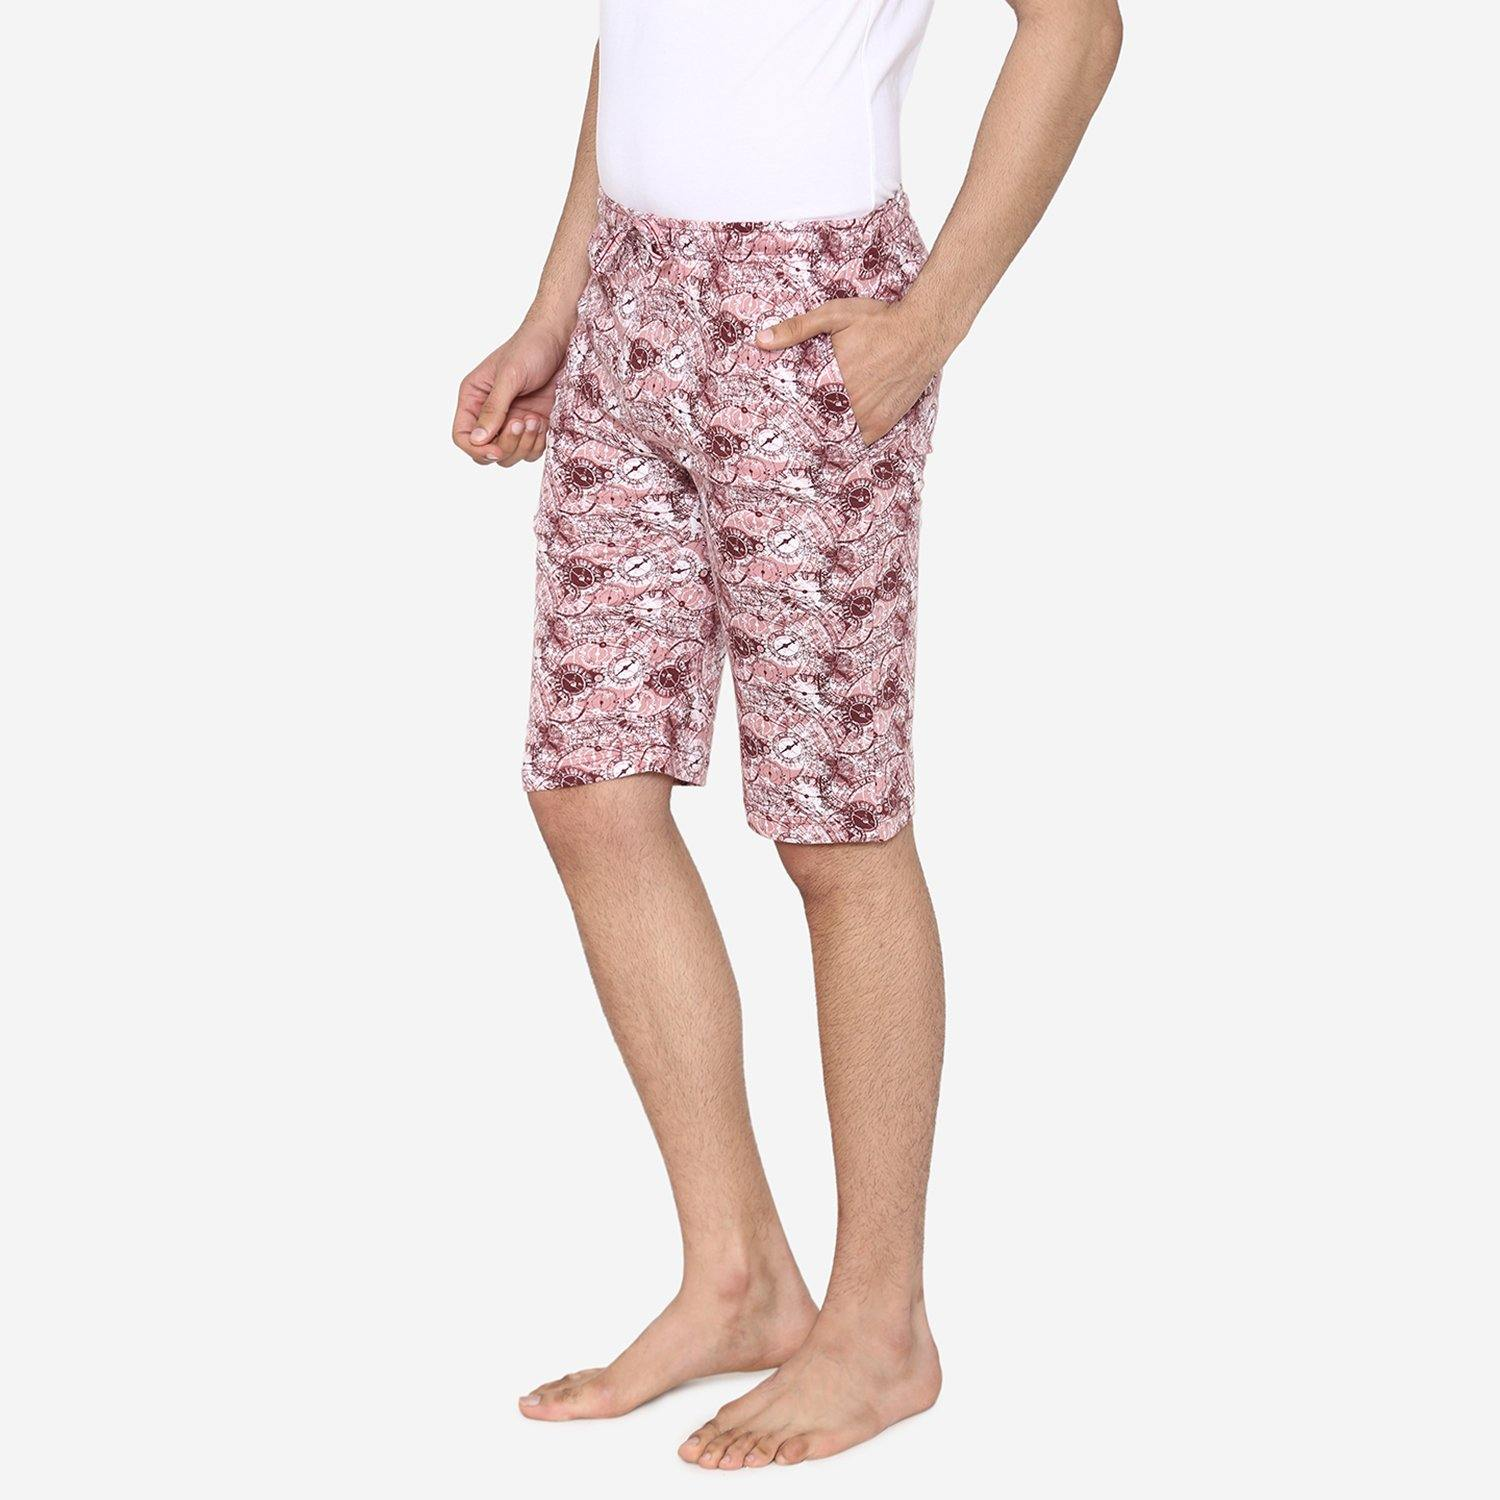 Men's Printed Comfy Shorts For Summer